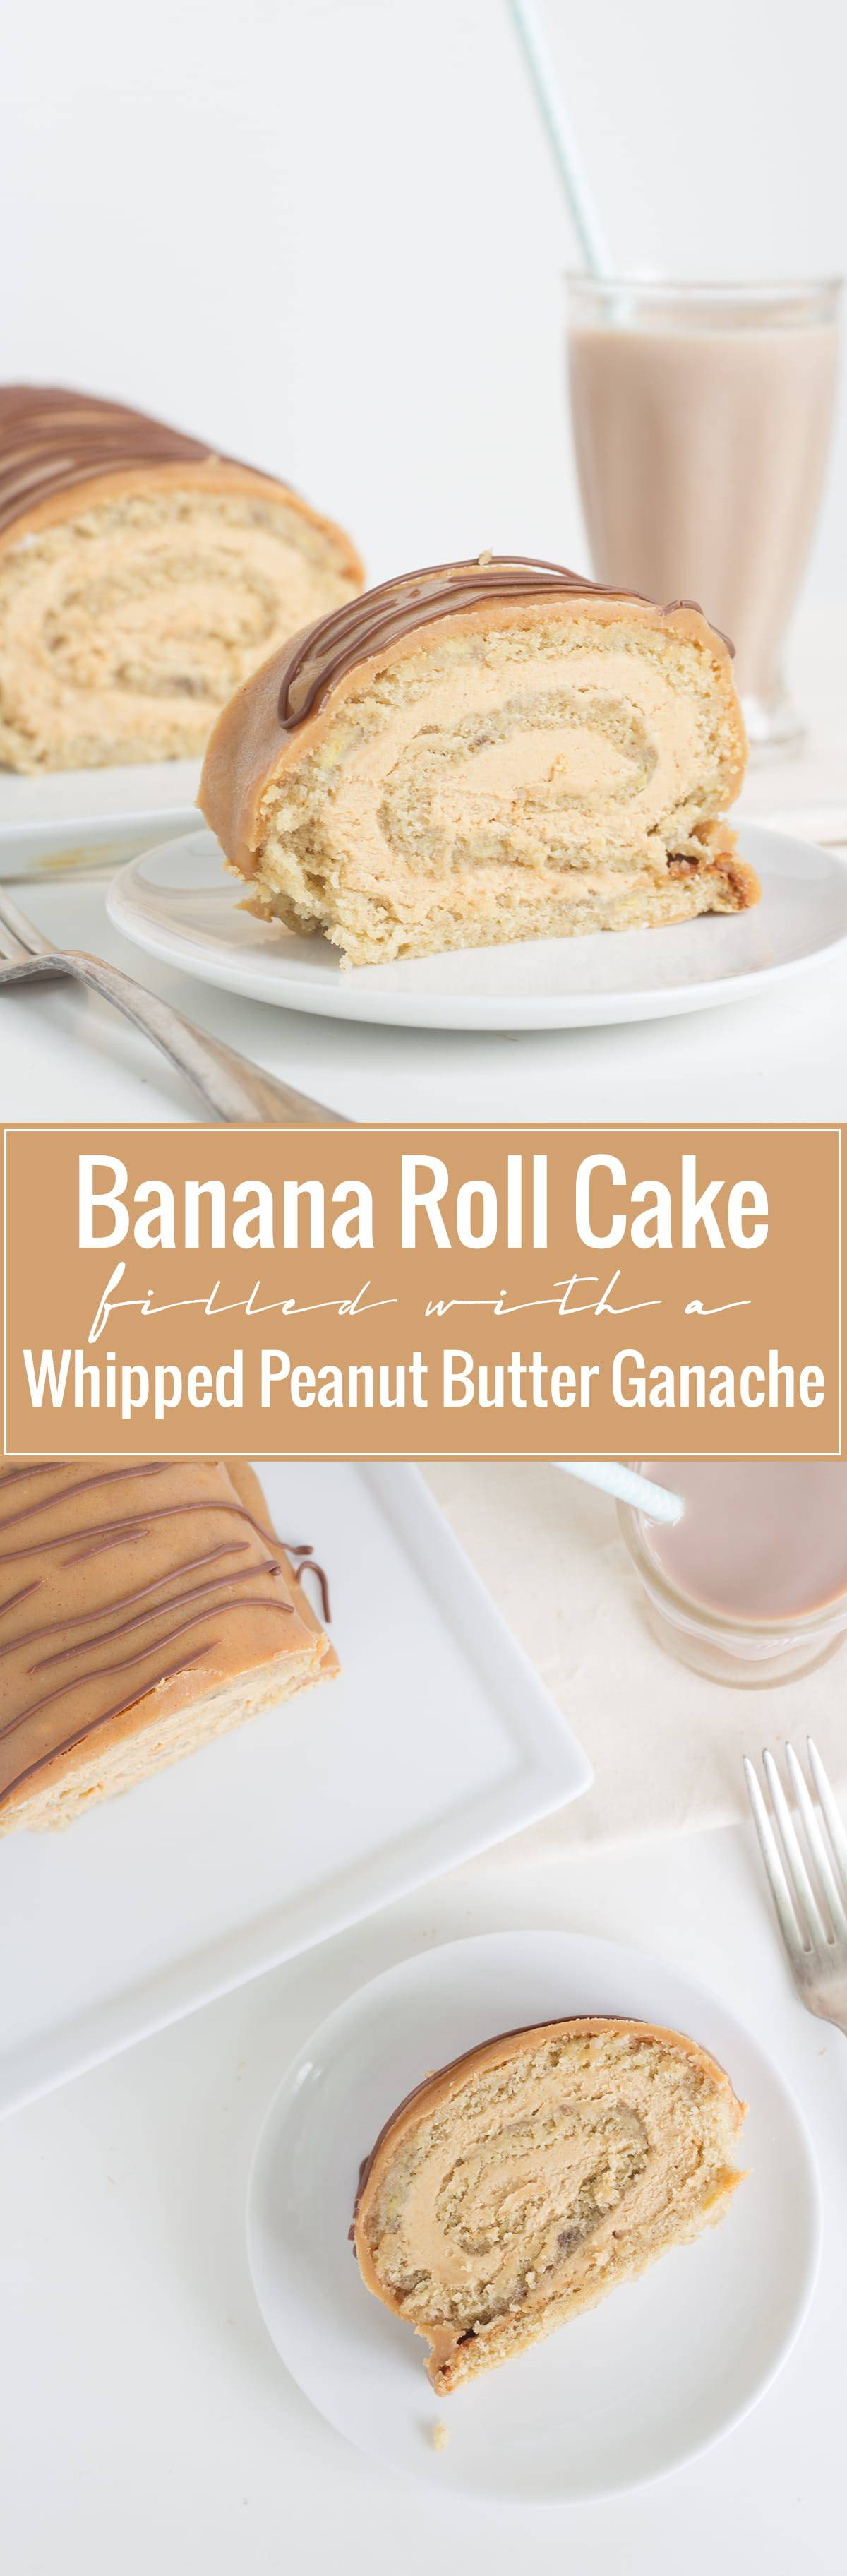 Banana Roll Cake with Whipped Peanut Butter Ganache